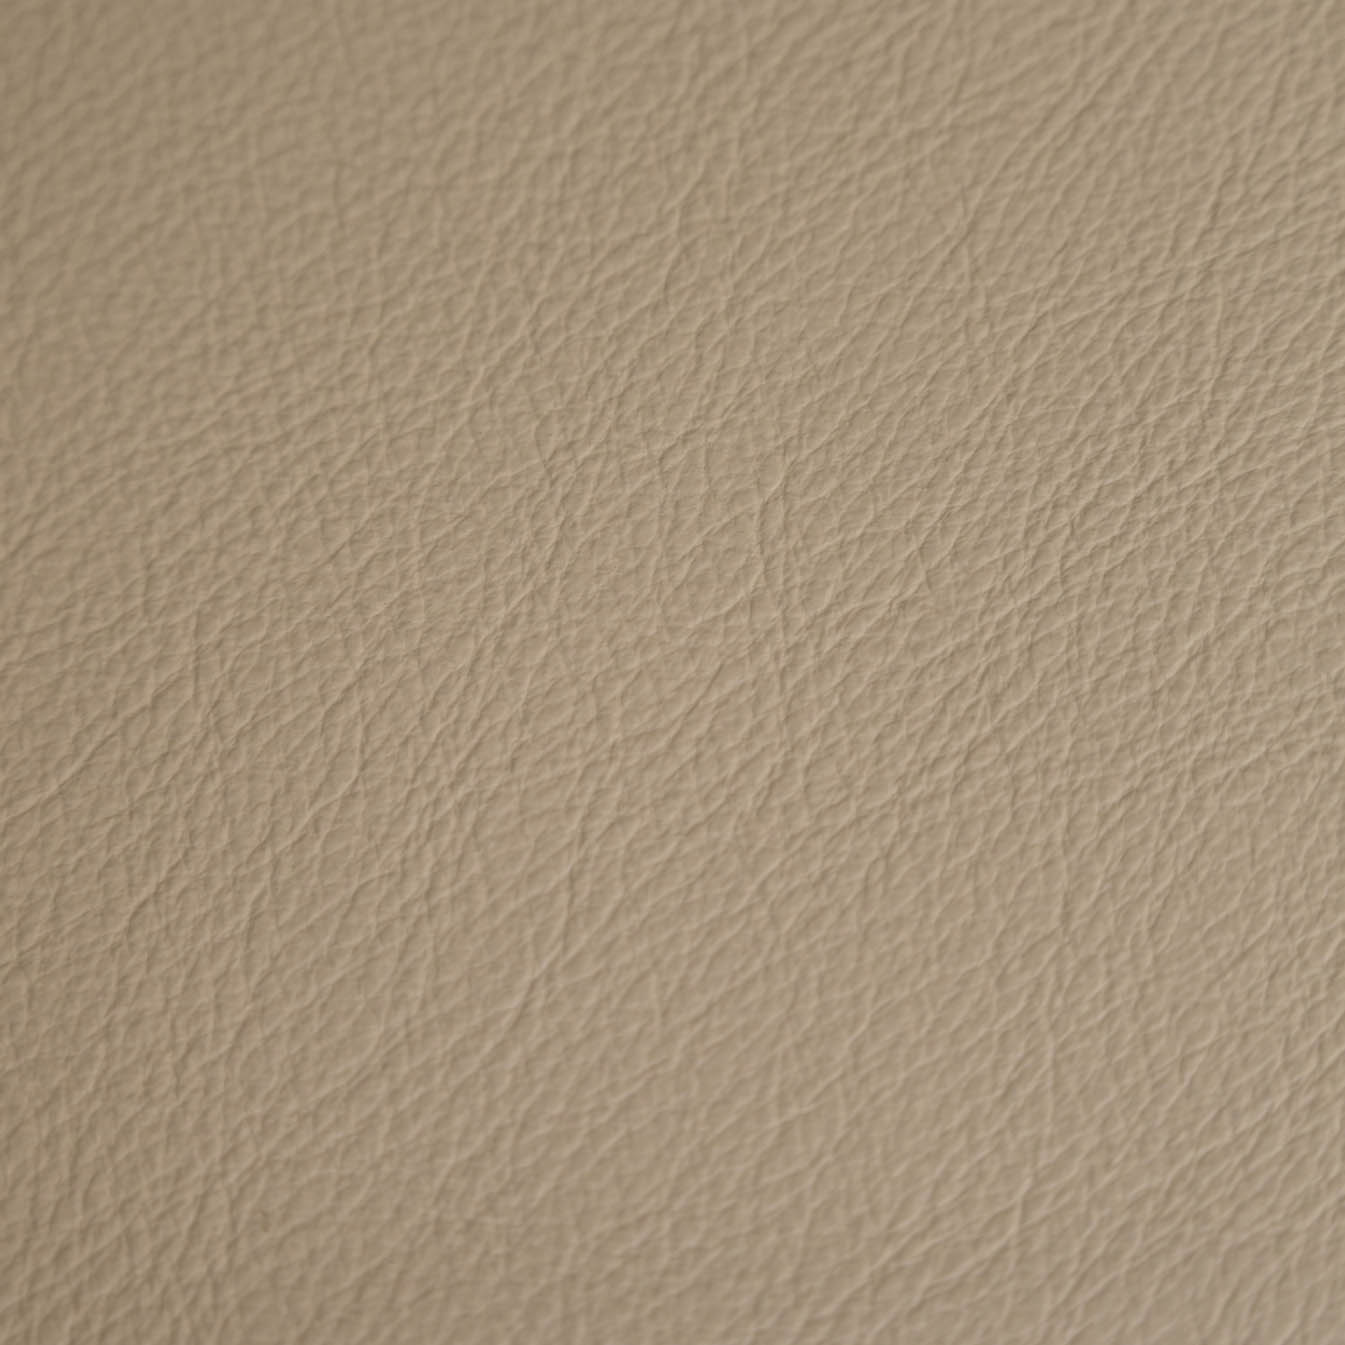 nappa leather in sand color